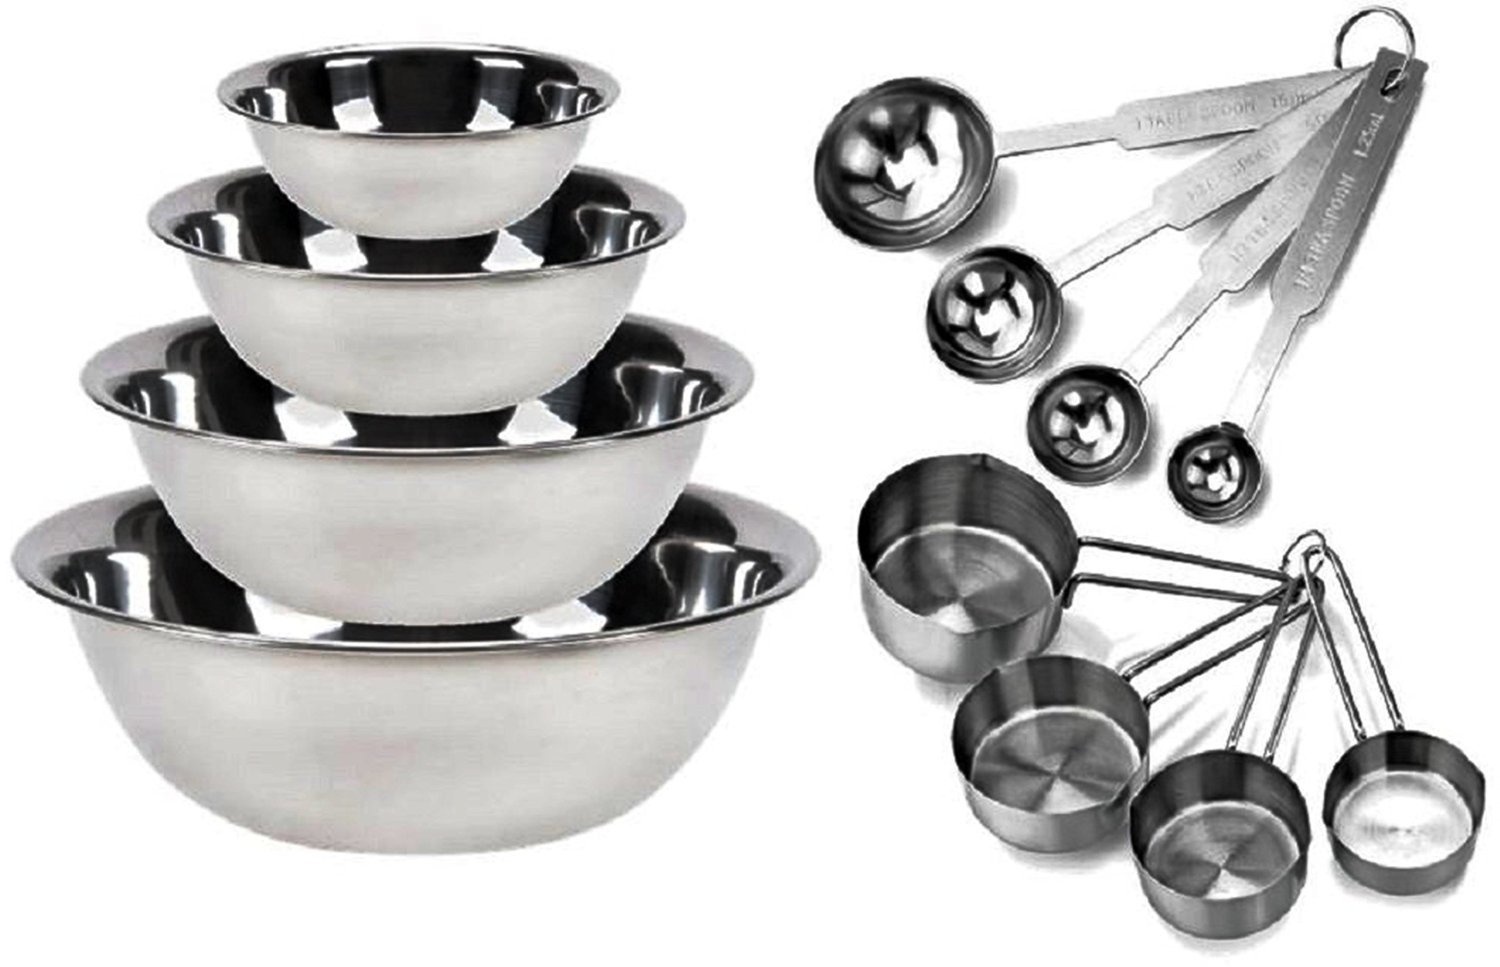 Kitchen Mission Stainless Steel Mixing Bowls 1.5,3,4, and 5 Quart. Plus Measuring Cup and Spoon Sets, Set of 6 (Complete Set) MBSO6